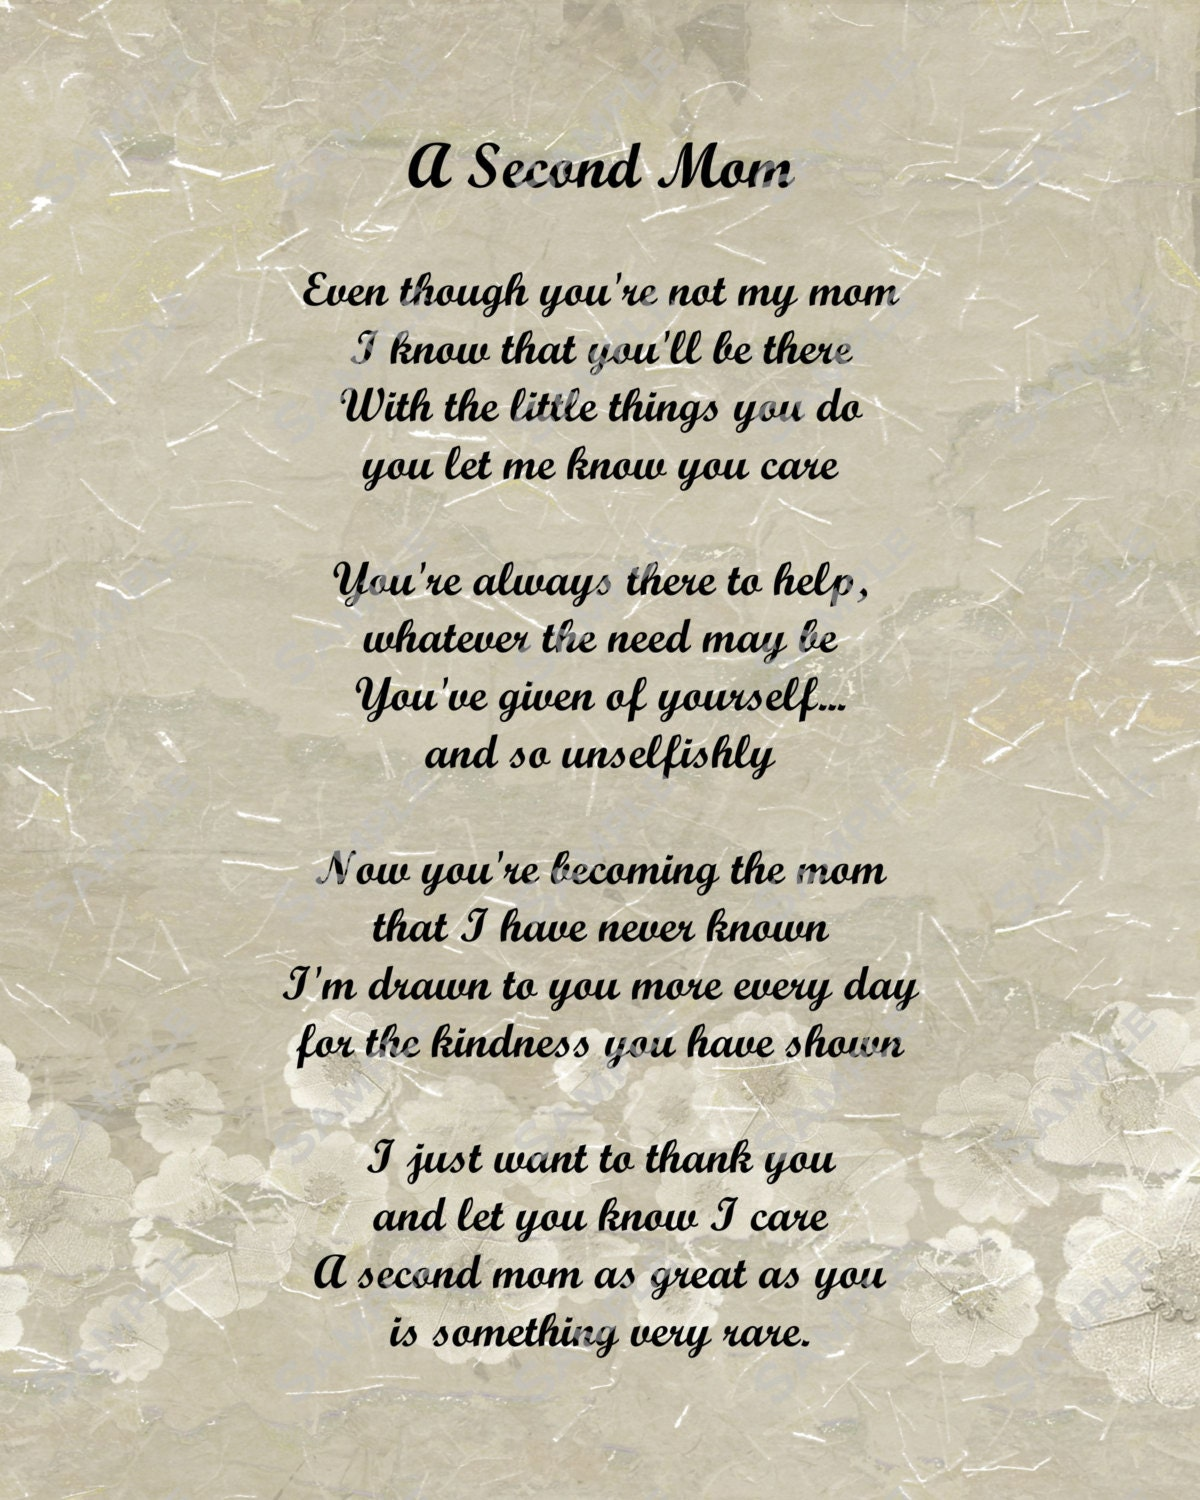 Items Similar To A Second Mom Love Poem For Stepmom 8 X 10